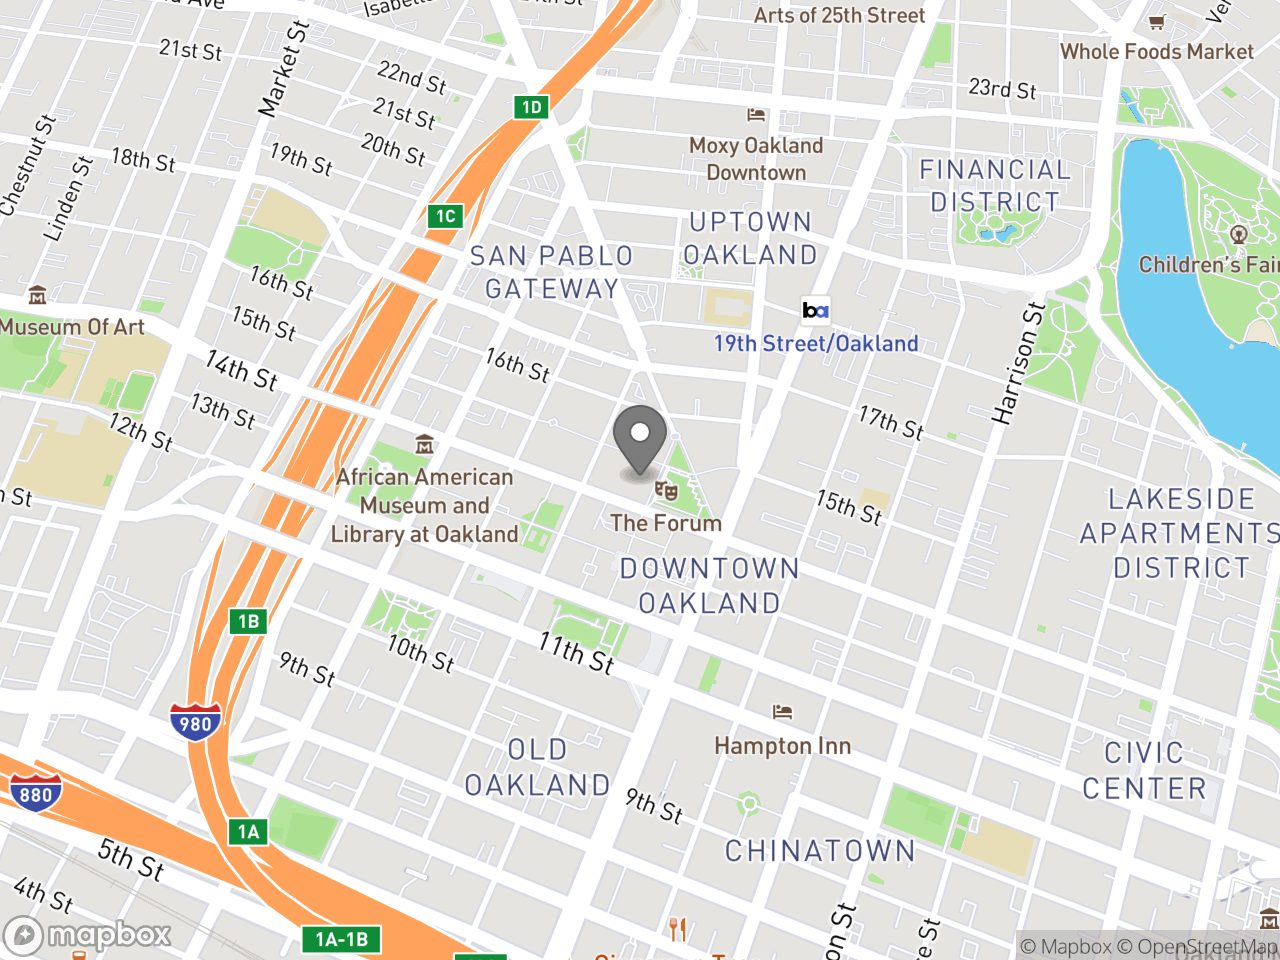 Map image for CANCELLED:  Police Commission November 28, 2019, located at 1 Frank H. Ogawa Plaza in Oakland, CA 94612